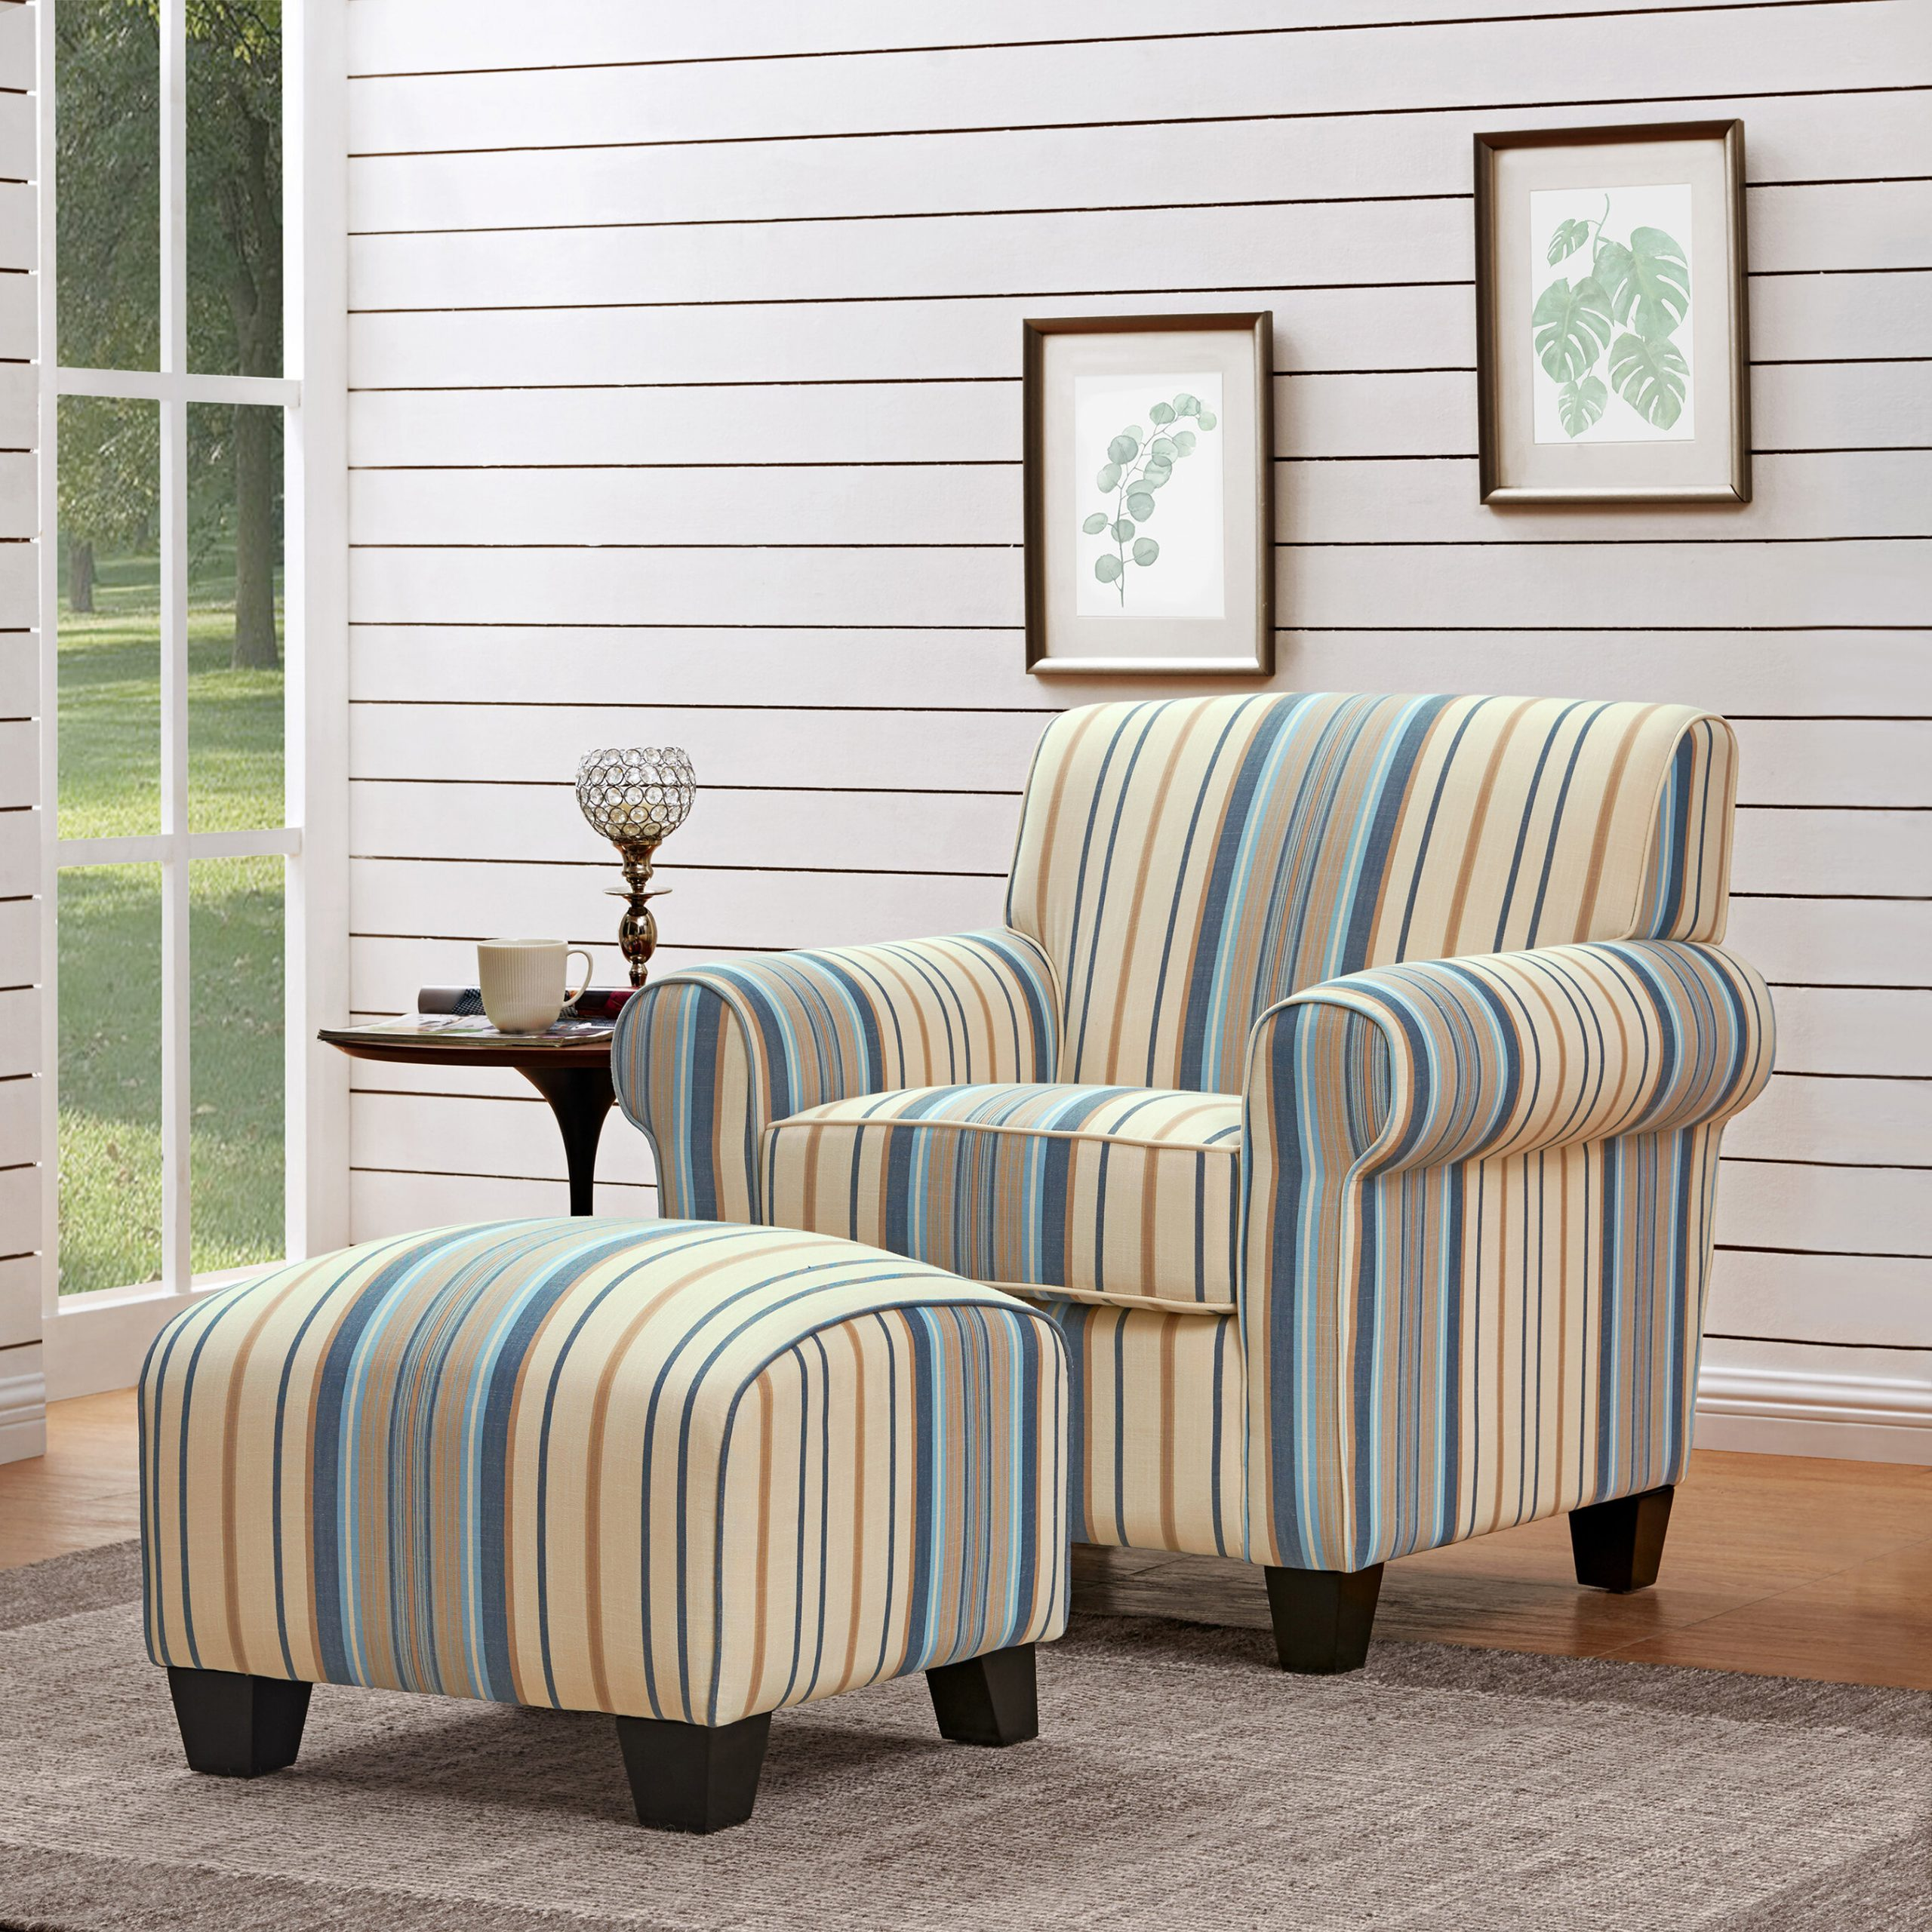 Arm Ottoman Included Accent Chairs You'Ll Love In 2021 | Wayfair With Alexander Cotton Blend Armchairs And Ottoman (View 4 of 15)